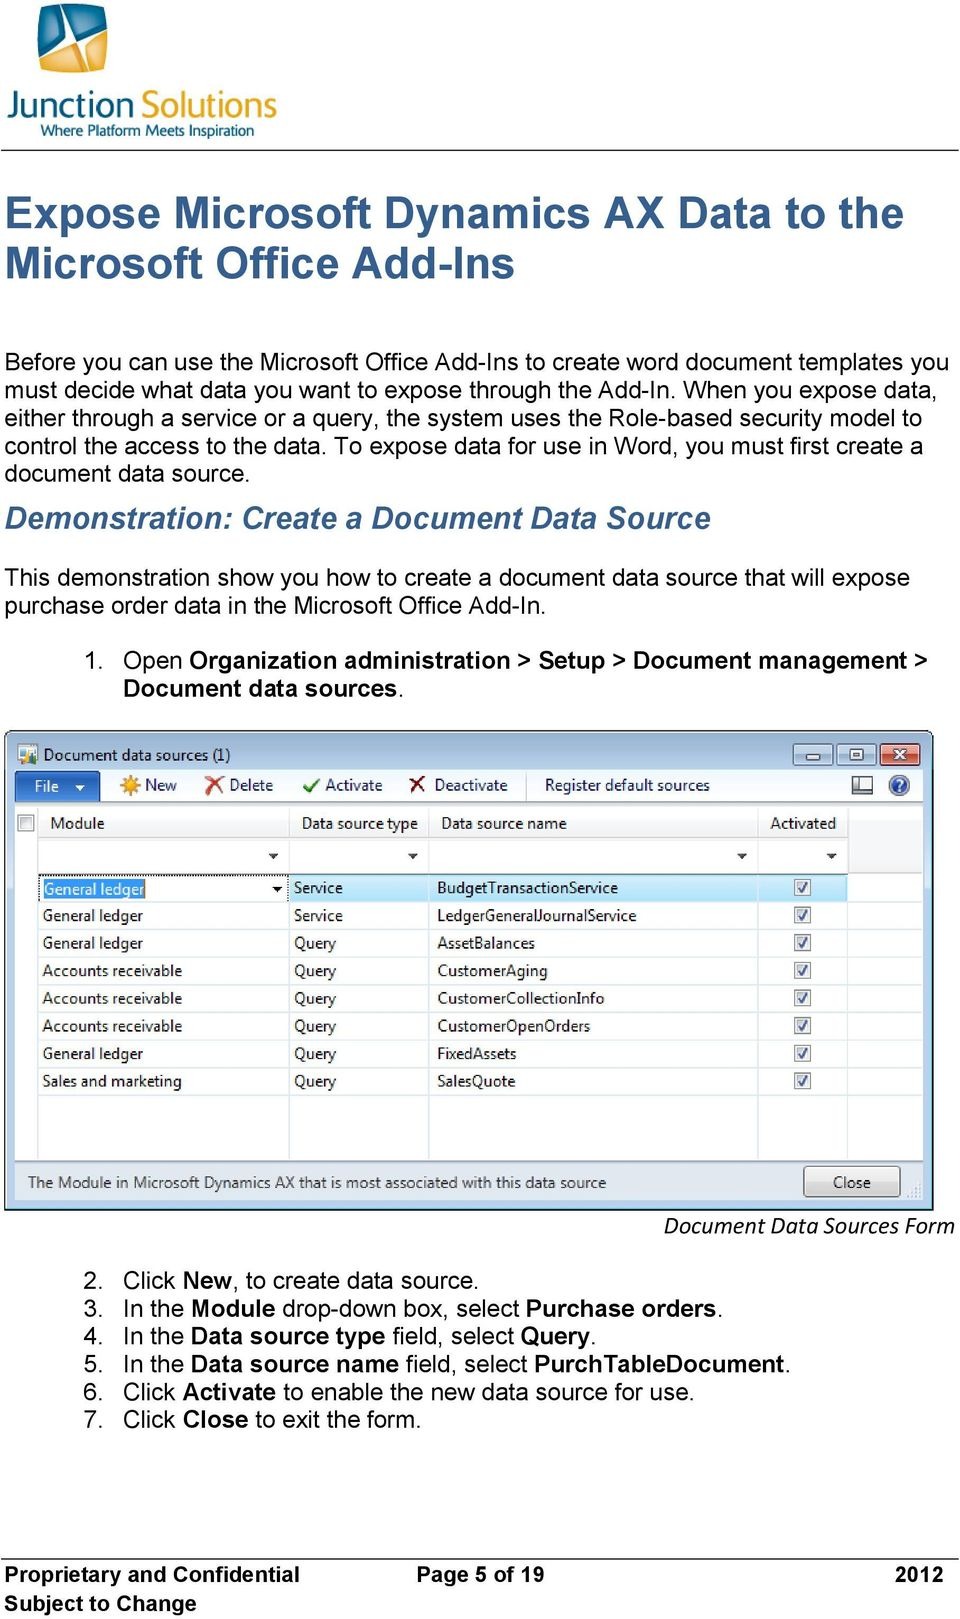 To expose data for use in Word, you must first create a document data source.